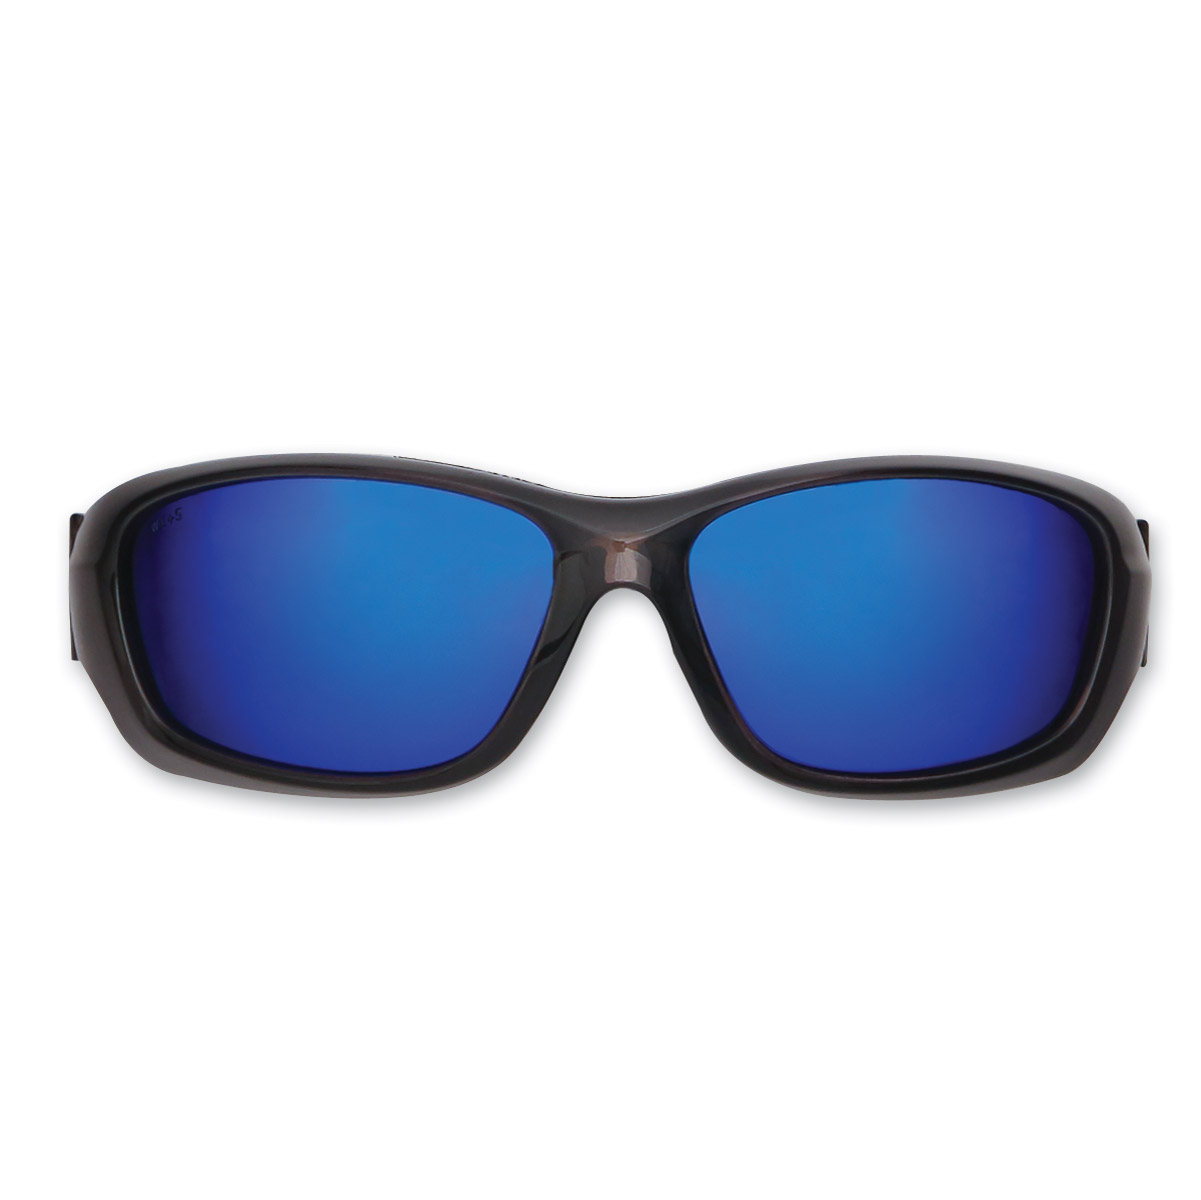 c768ebca34 Wiley X Motorcycle Glasses Reviews « One More Soul